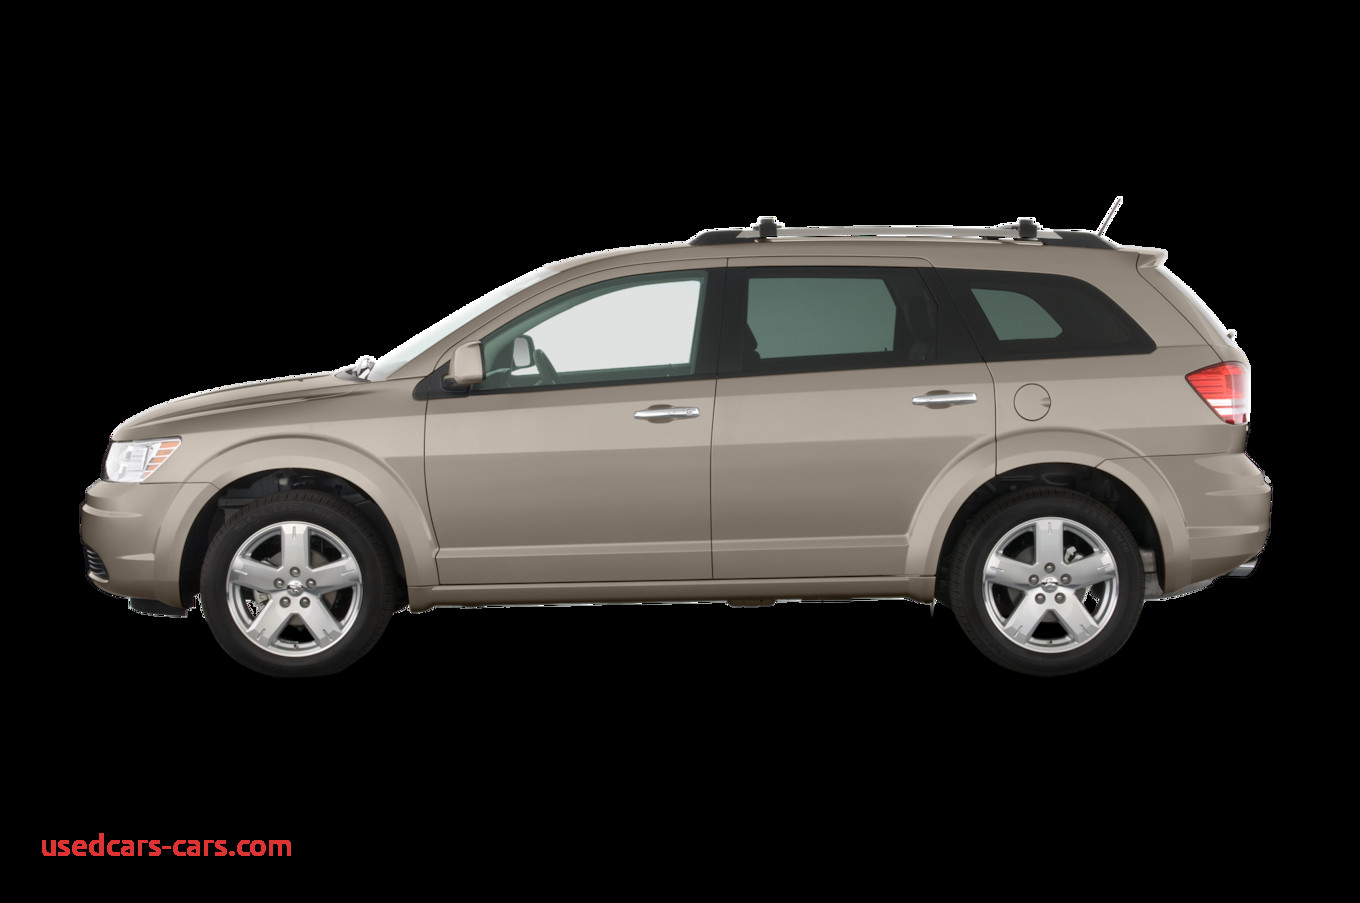 Dodge Journey Rt 2010 Luxury 2010 Dodge Journey Reviews and Rating Motor Trend